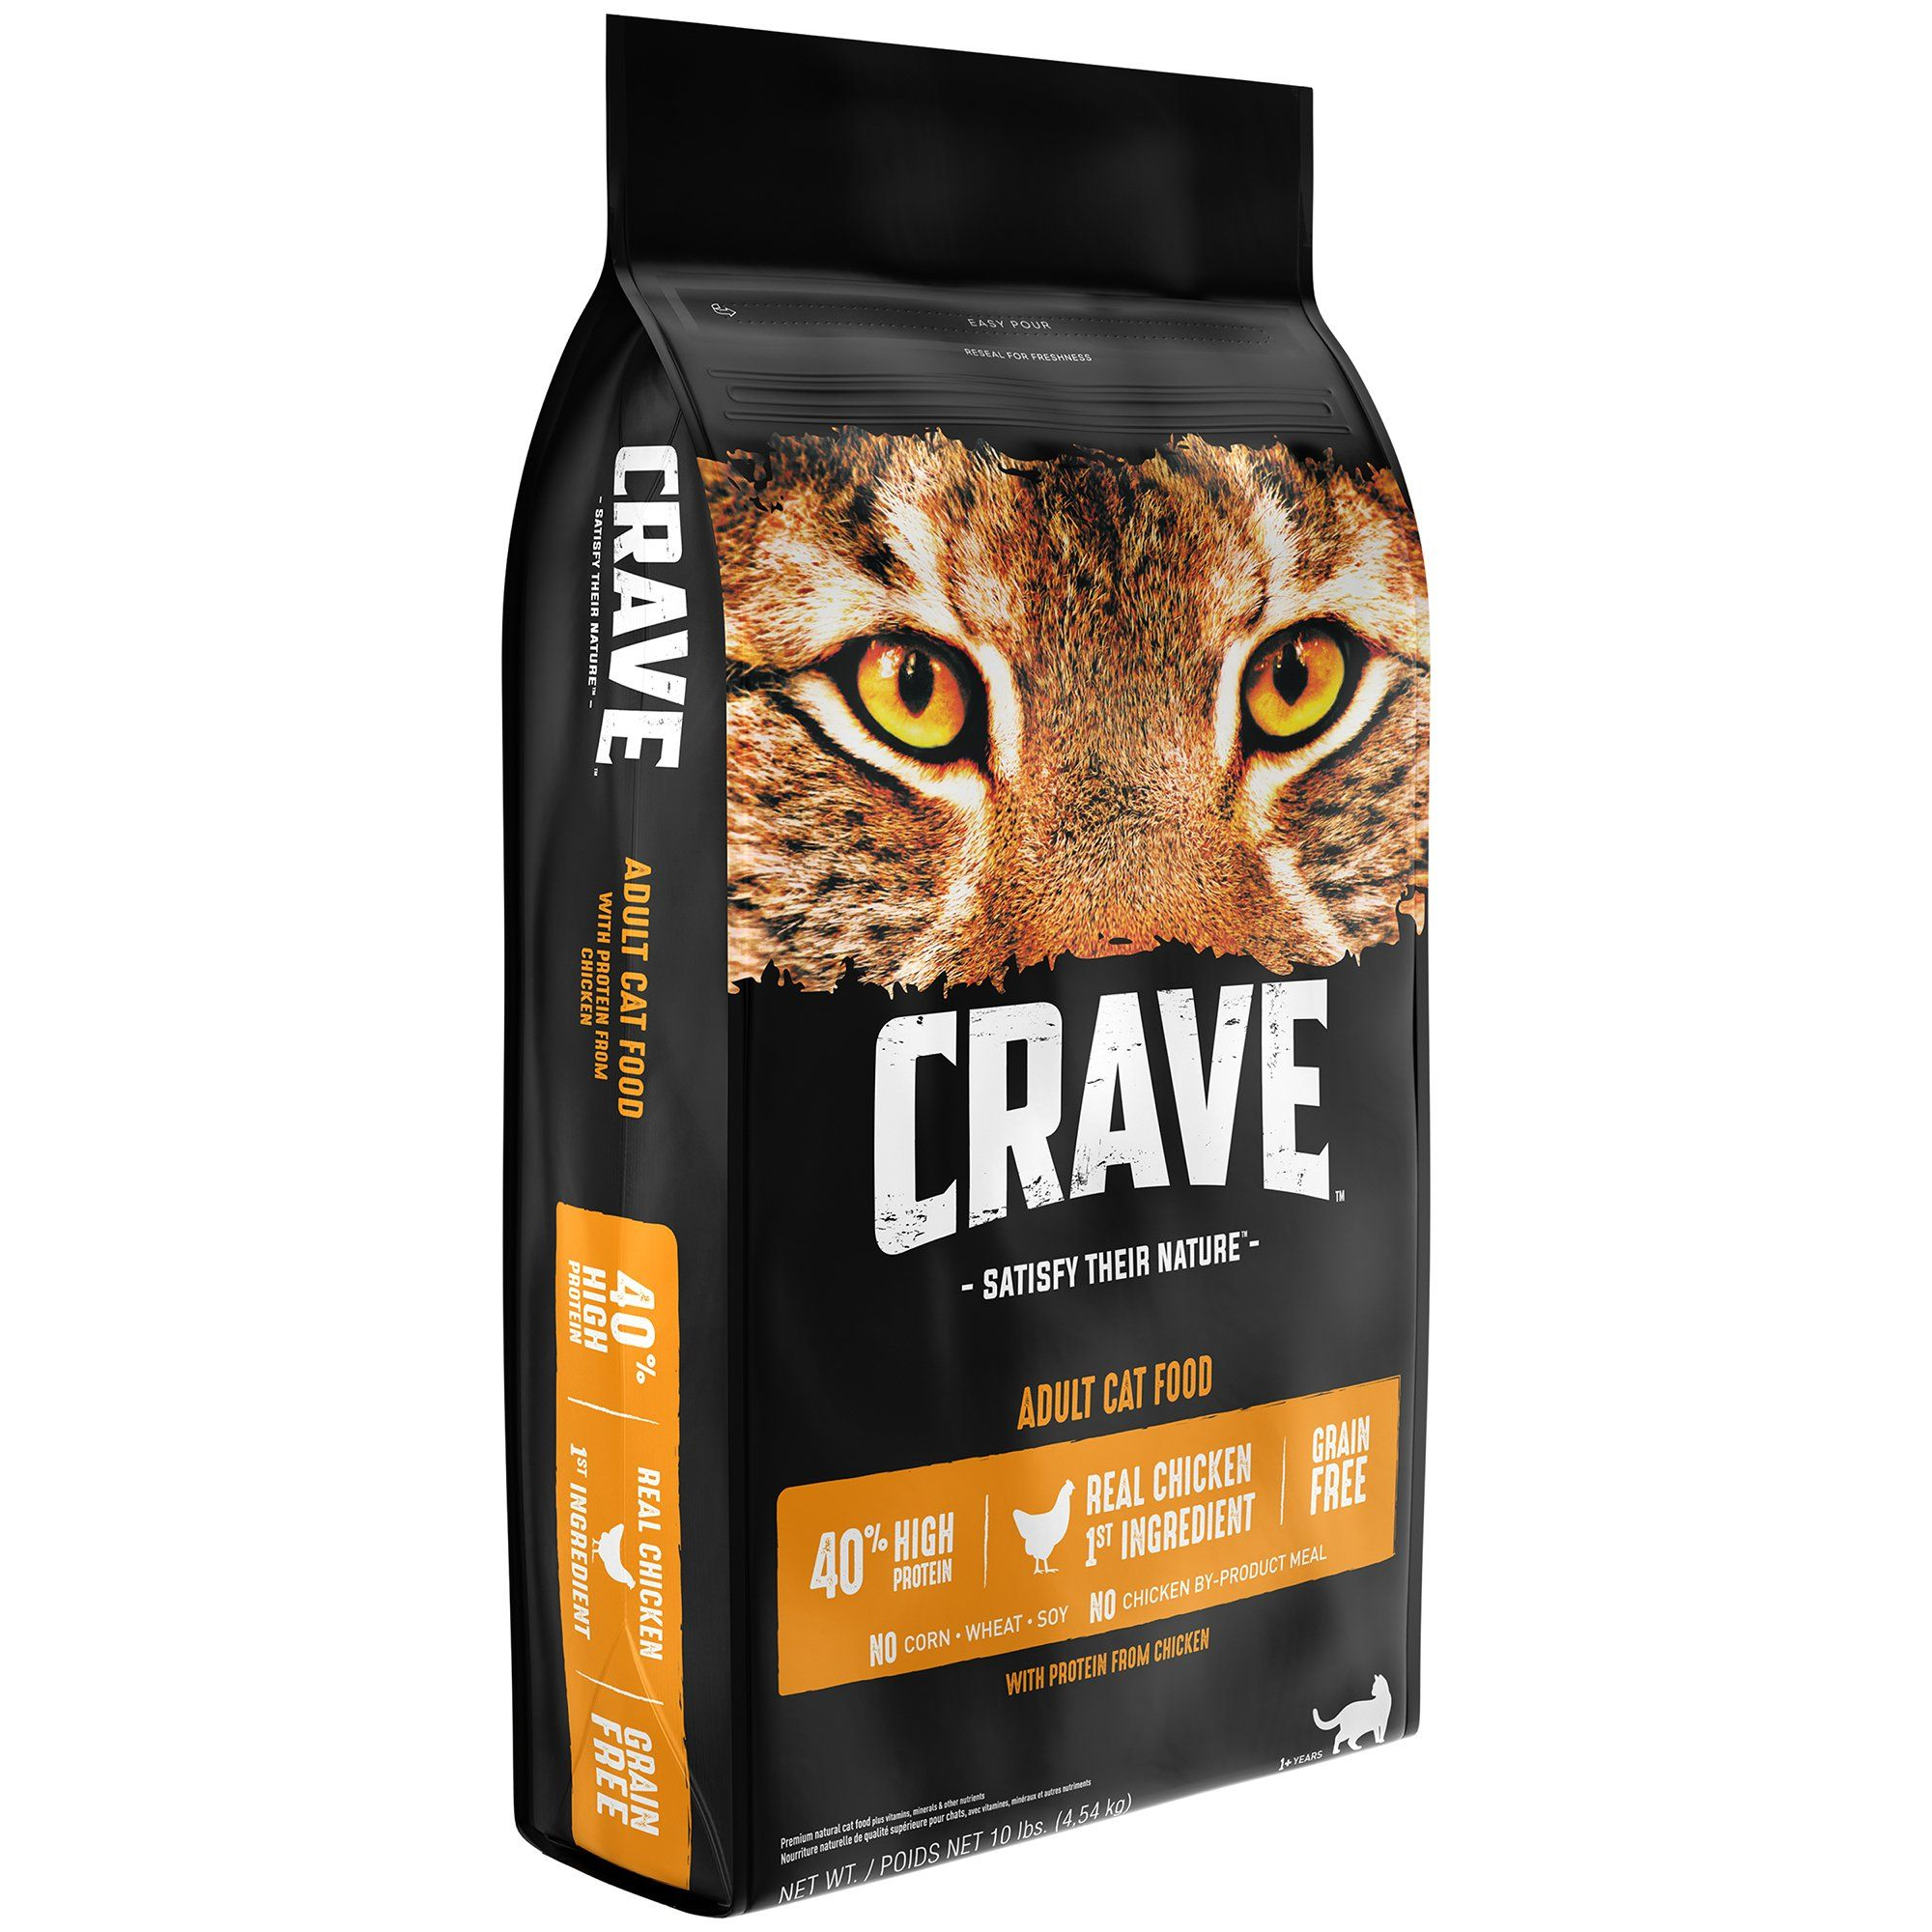 Crave Grain Free High Protein Dry Cat Food Dry Cat Food Best Cat Food Grain Free Cat Food